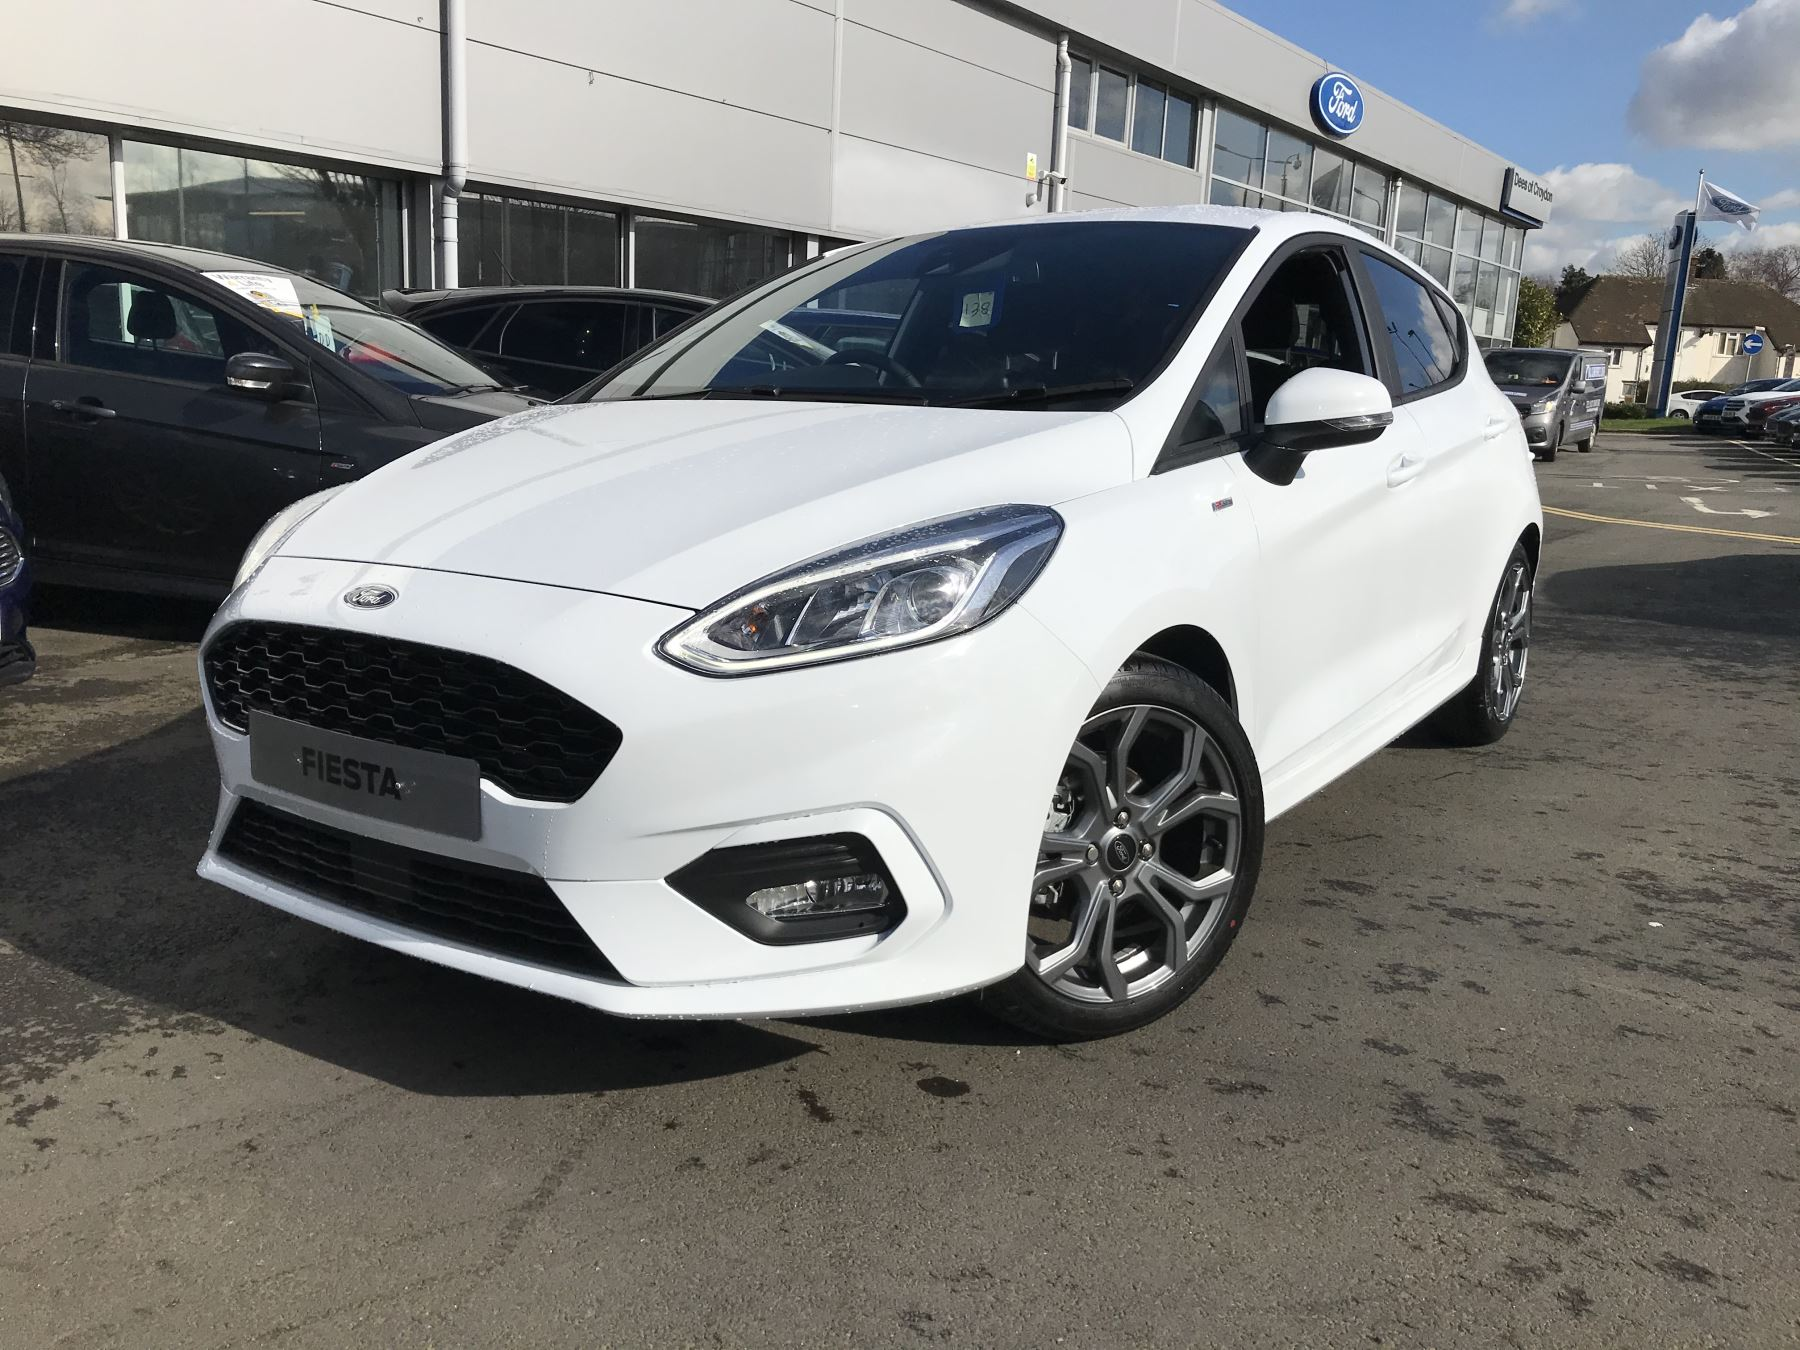 Ford Fiesta ST-Line 1.0T EcoBoost 100PS 6 Speed image 1